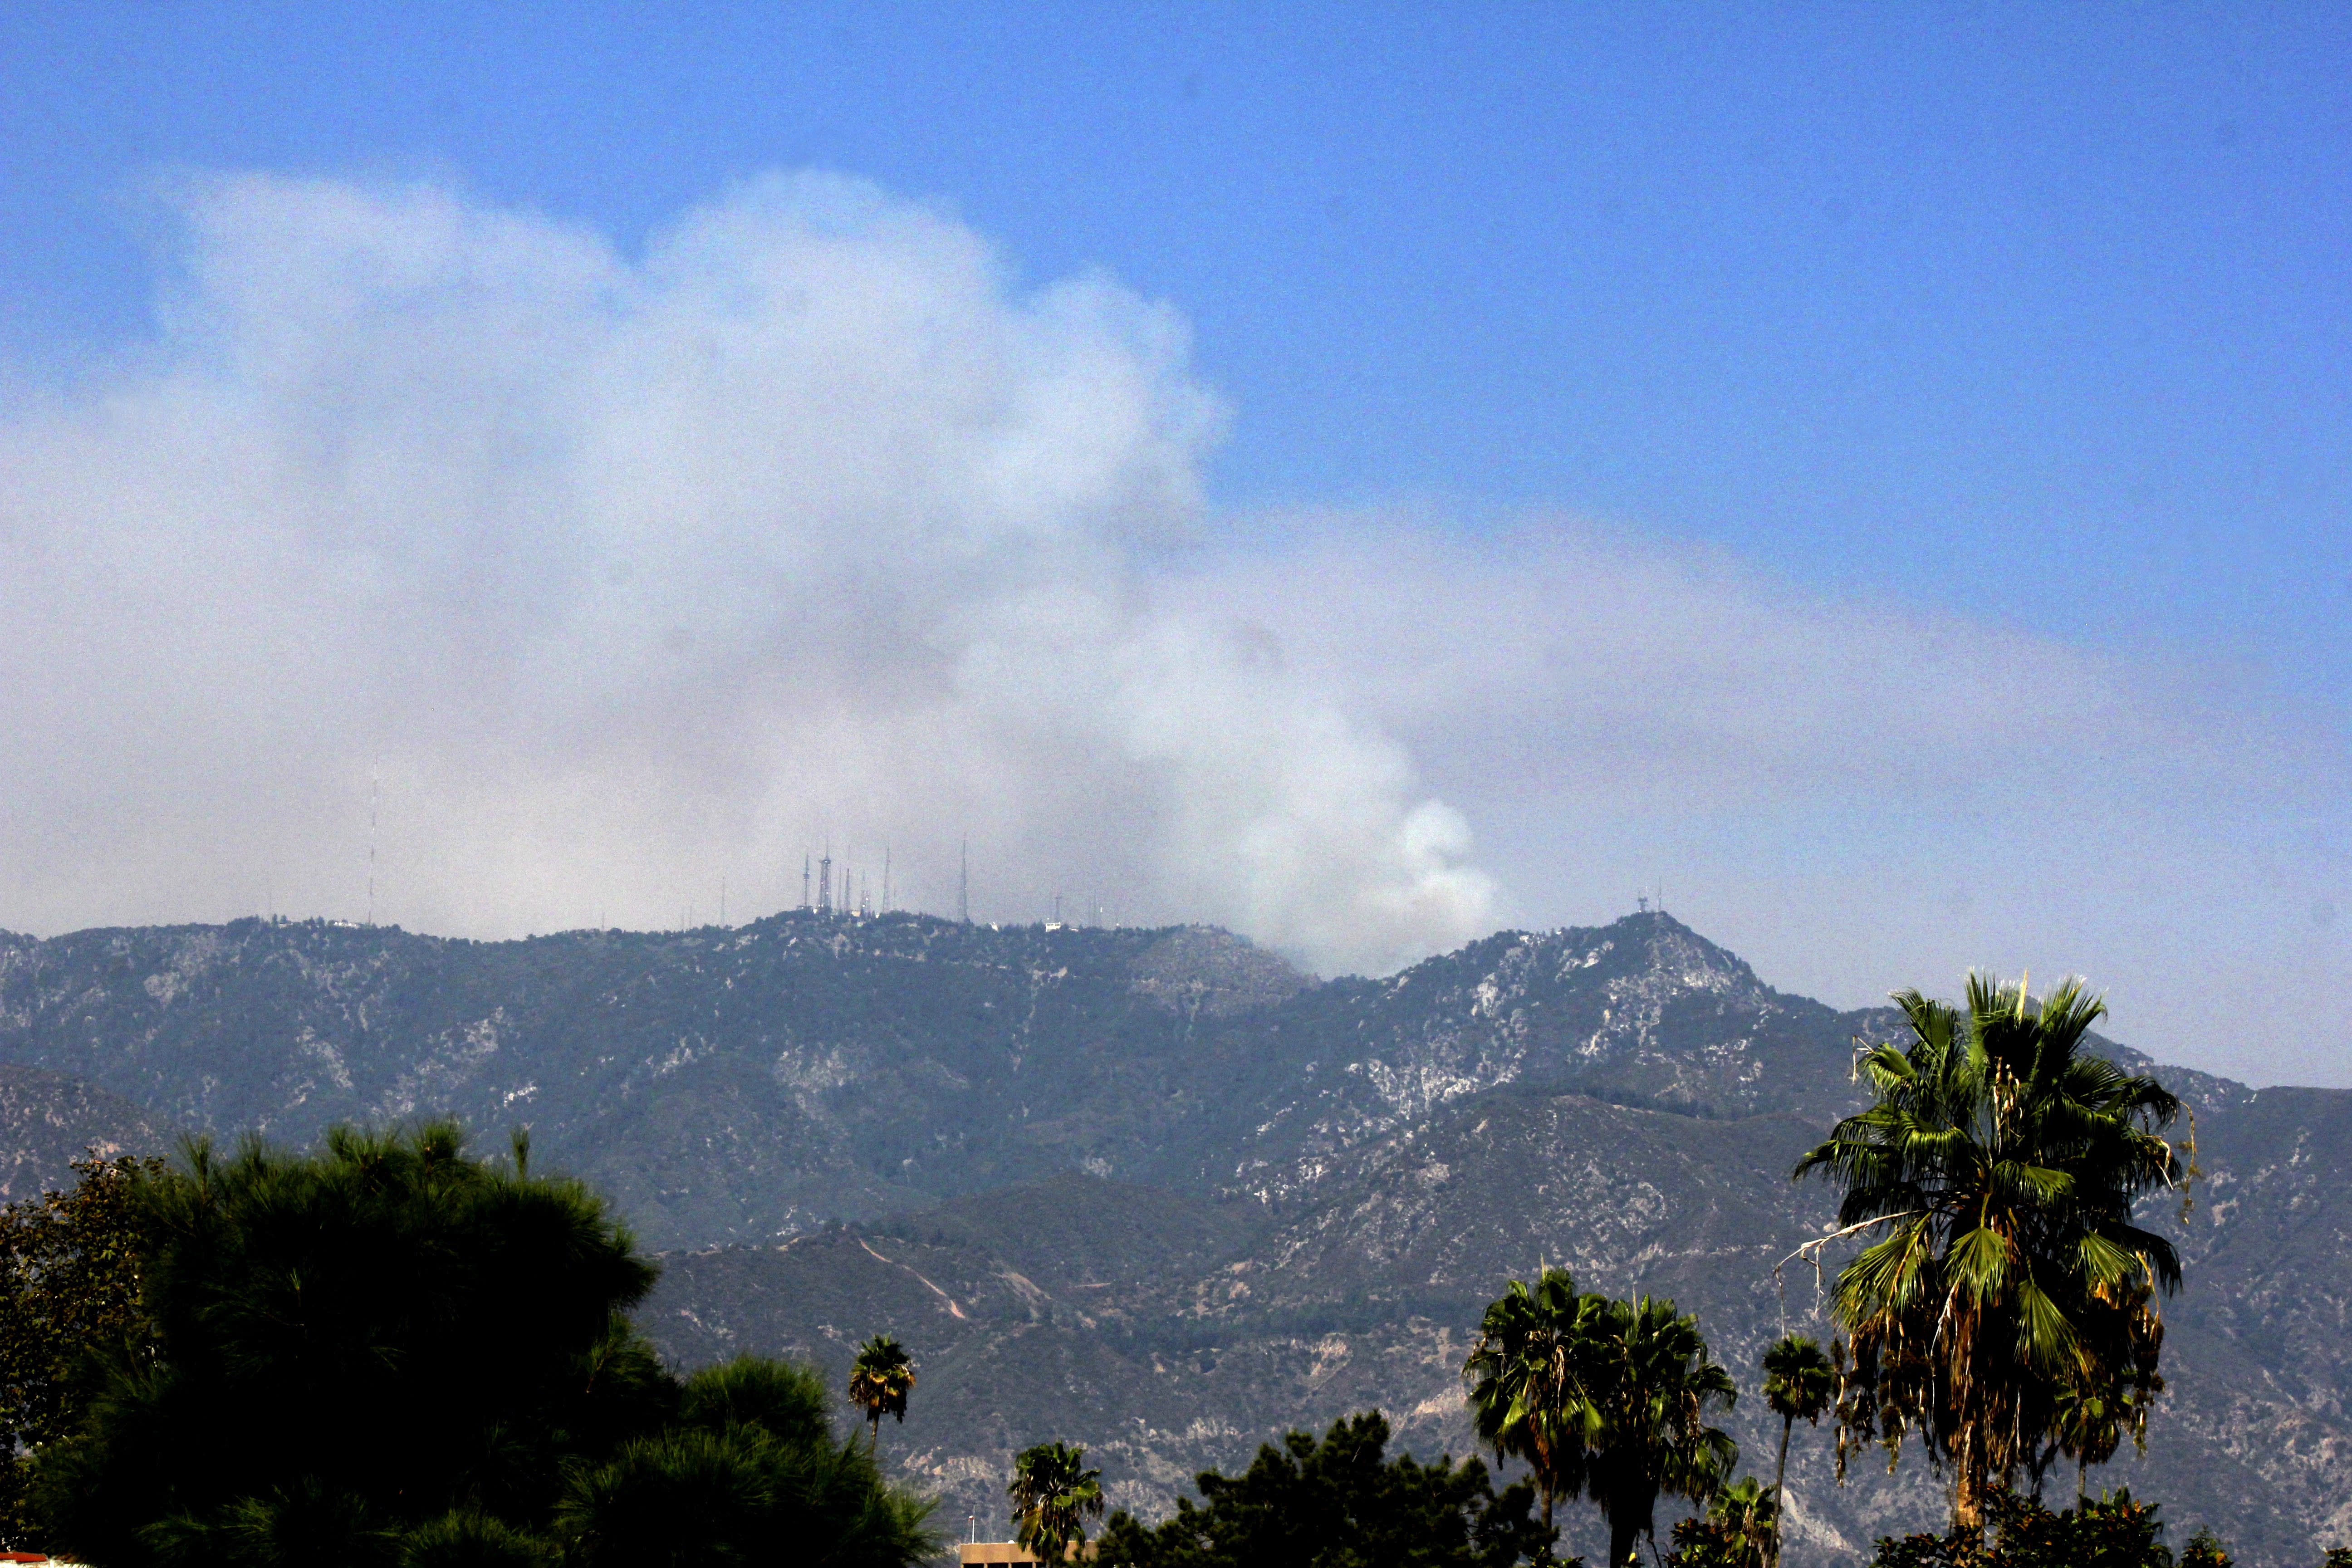 Smoke is seen from the Bobcat Fire burning actively near Mount Wilson northeast of Los Angeles on Thursday, Sept. 17, 2020. The peak is the site of historic Mount Wilson Observatory, which played a pivotal role in early 20th century astronomy. The fire also made a run at the peak earlier in the week but firefighters were able to defend the observatory. The fire also was active on the north side of the mountain range where authorities ordered evacuation of the community of Juniper Hills. (AP Photo/John Antczak)